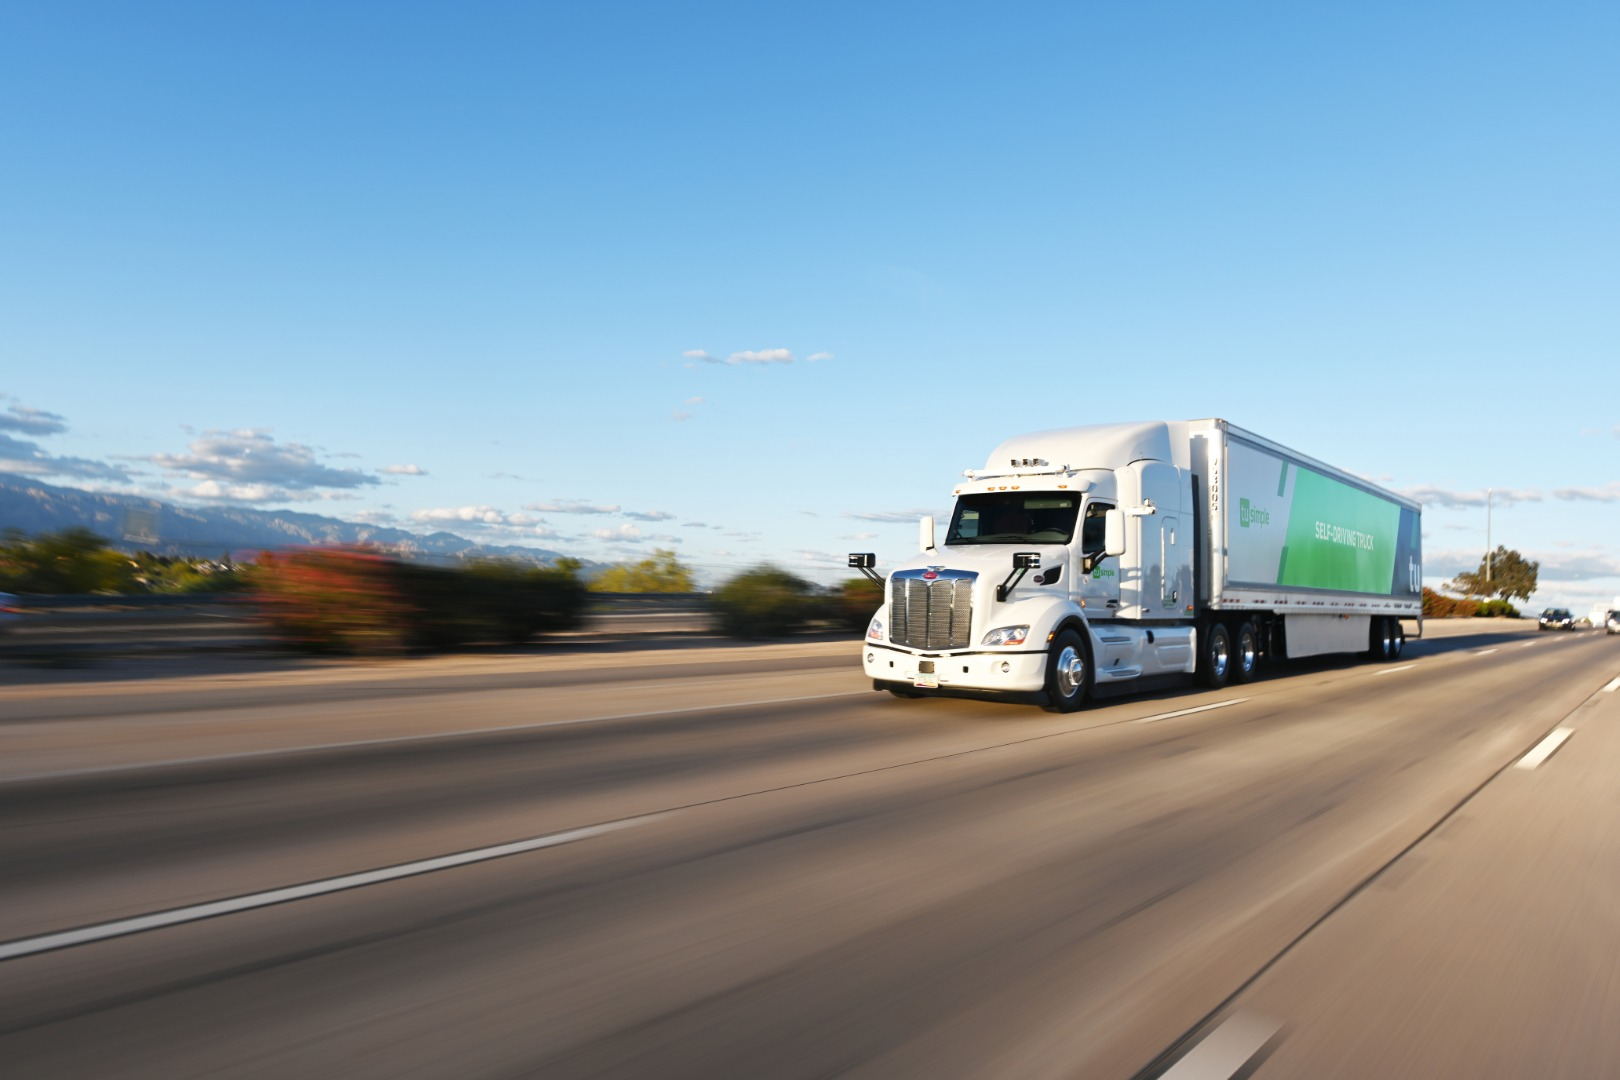 One of TuSimple's self-driving trucks in action